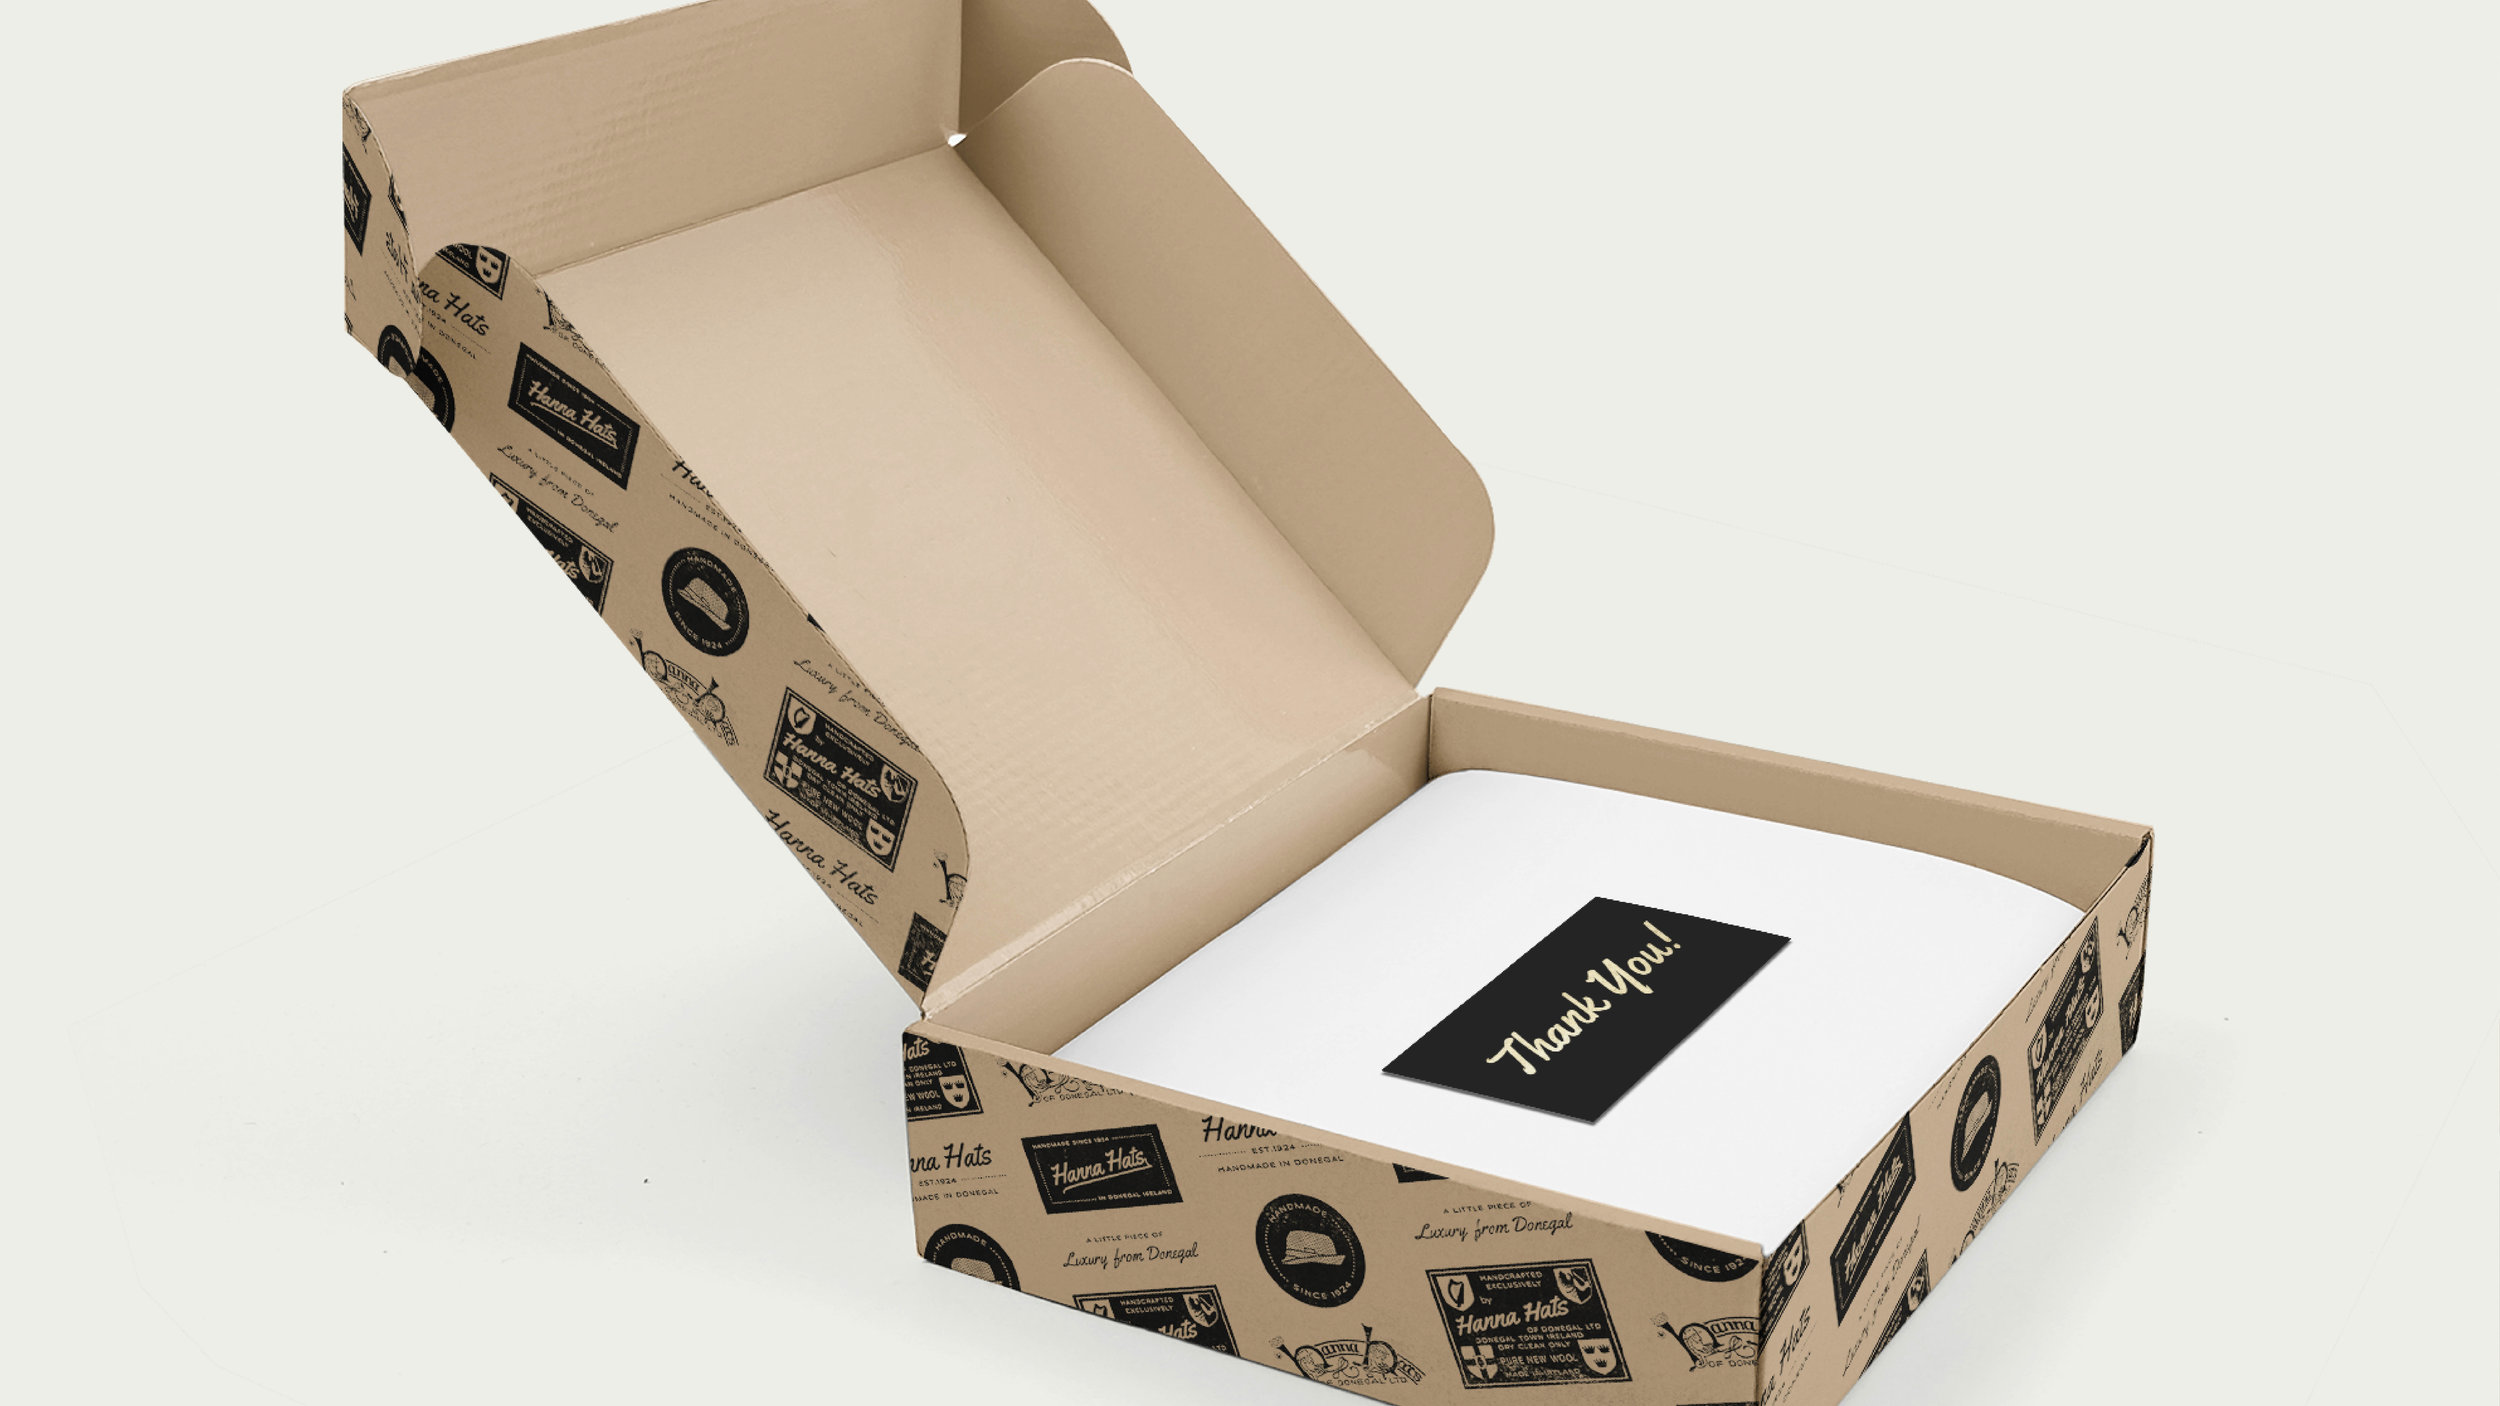 Since the box has the pattern, the best choice is pure white tissue wrapping which creates a really nice contrast.